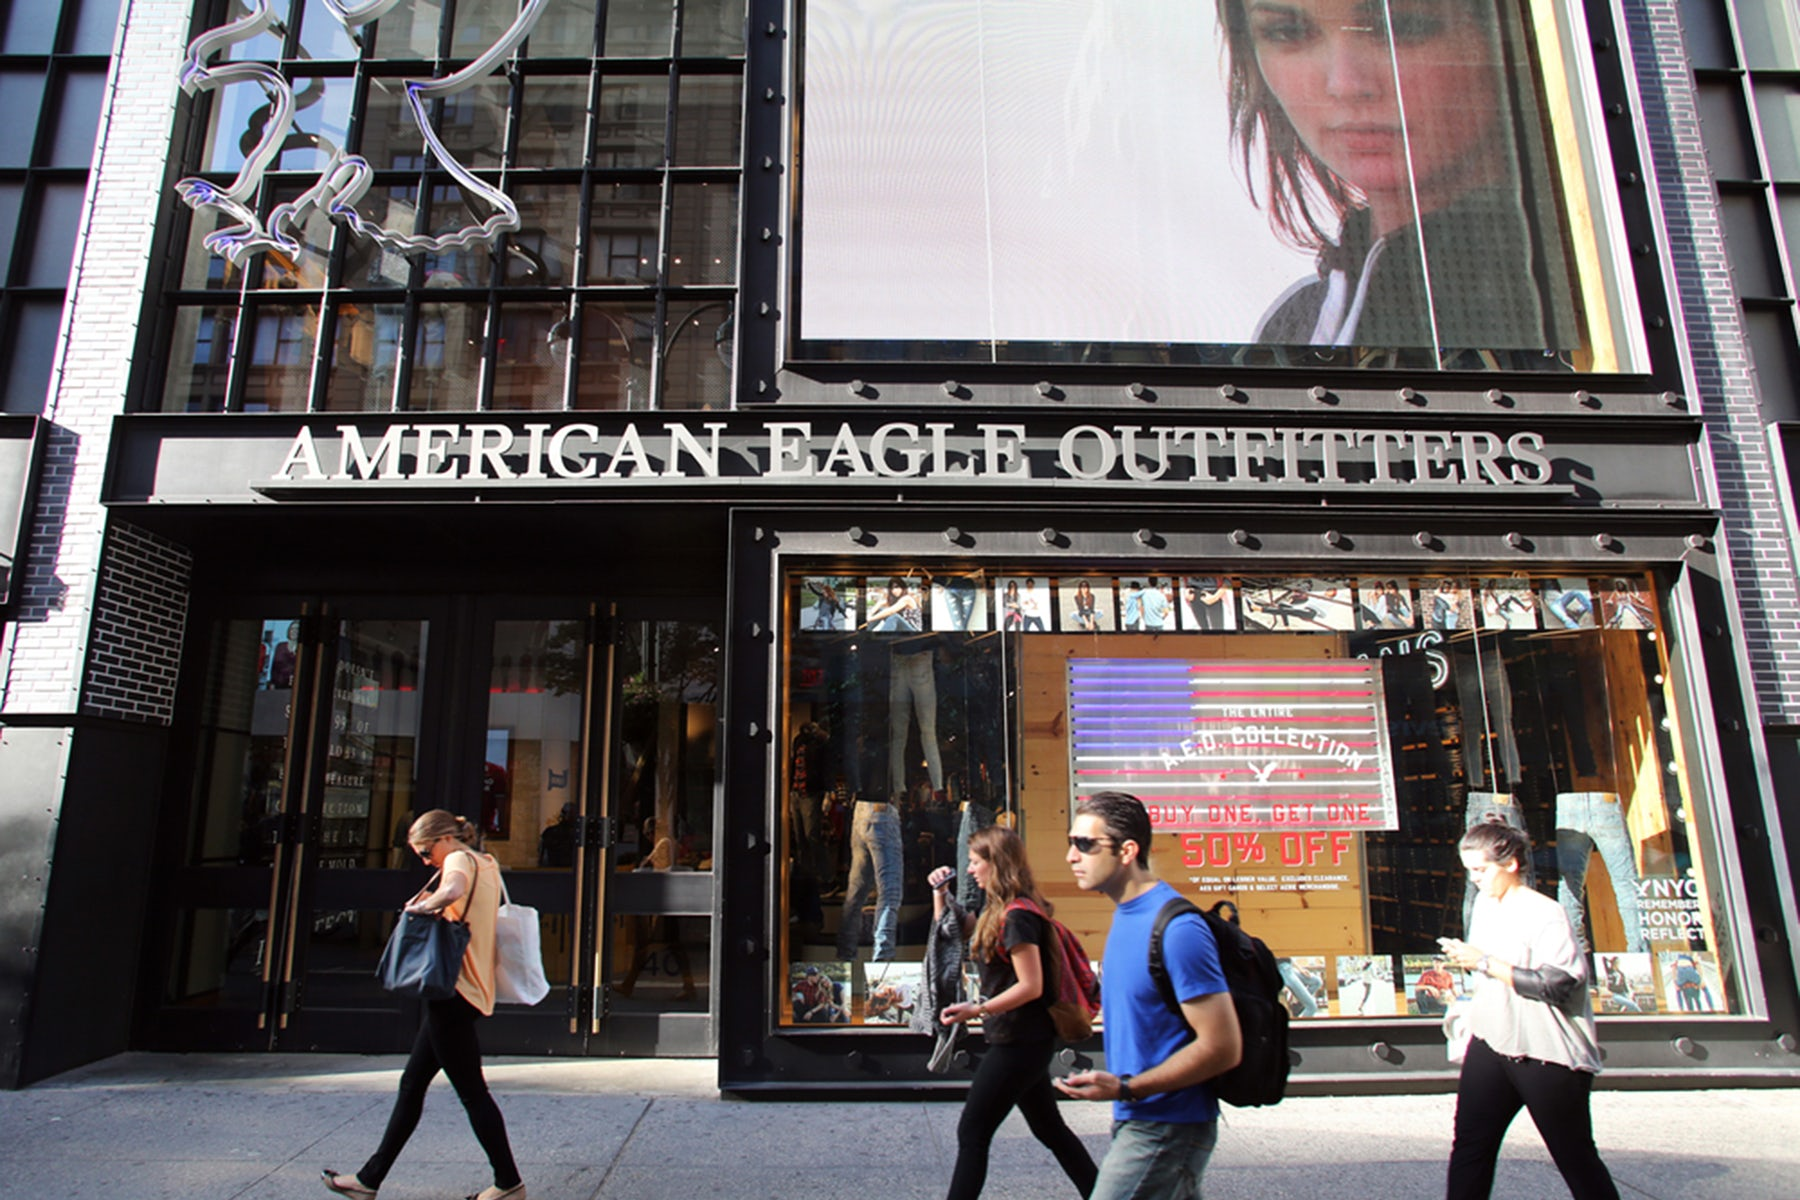 American Eagle Outfitters | Source: Shutterstock